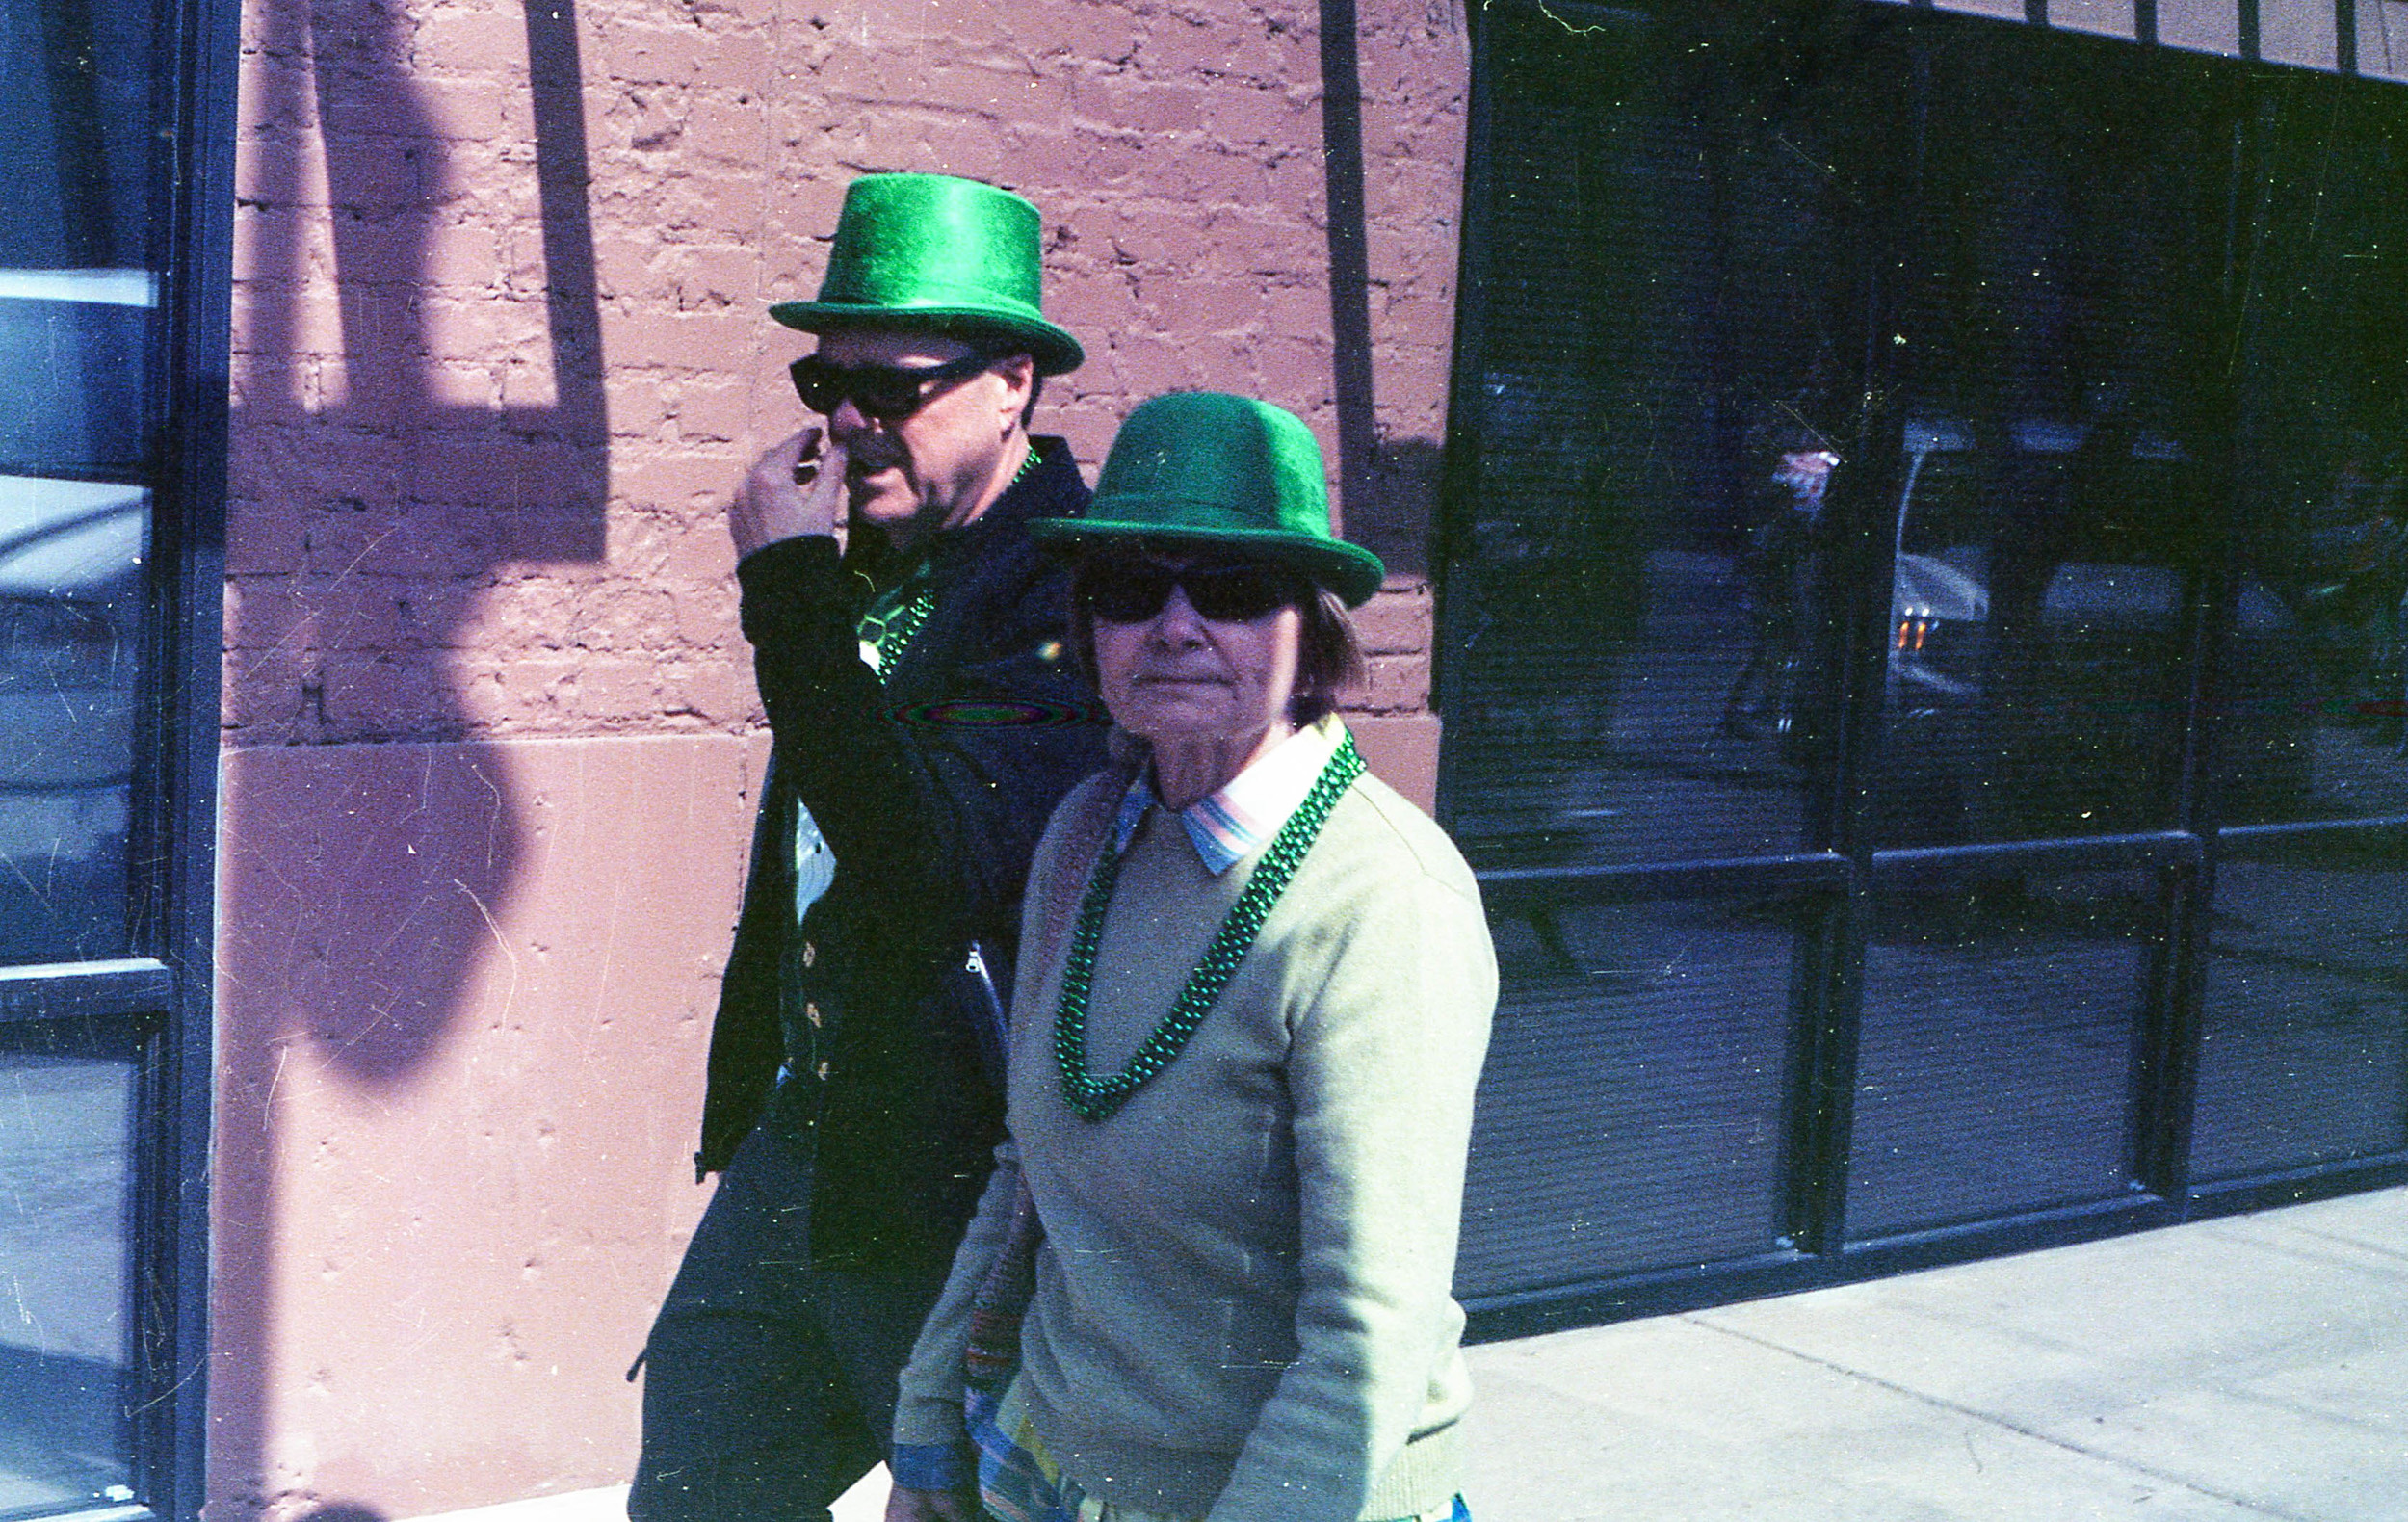 That leprechaun was digging for gold.